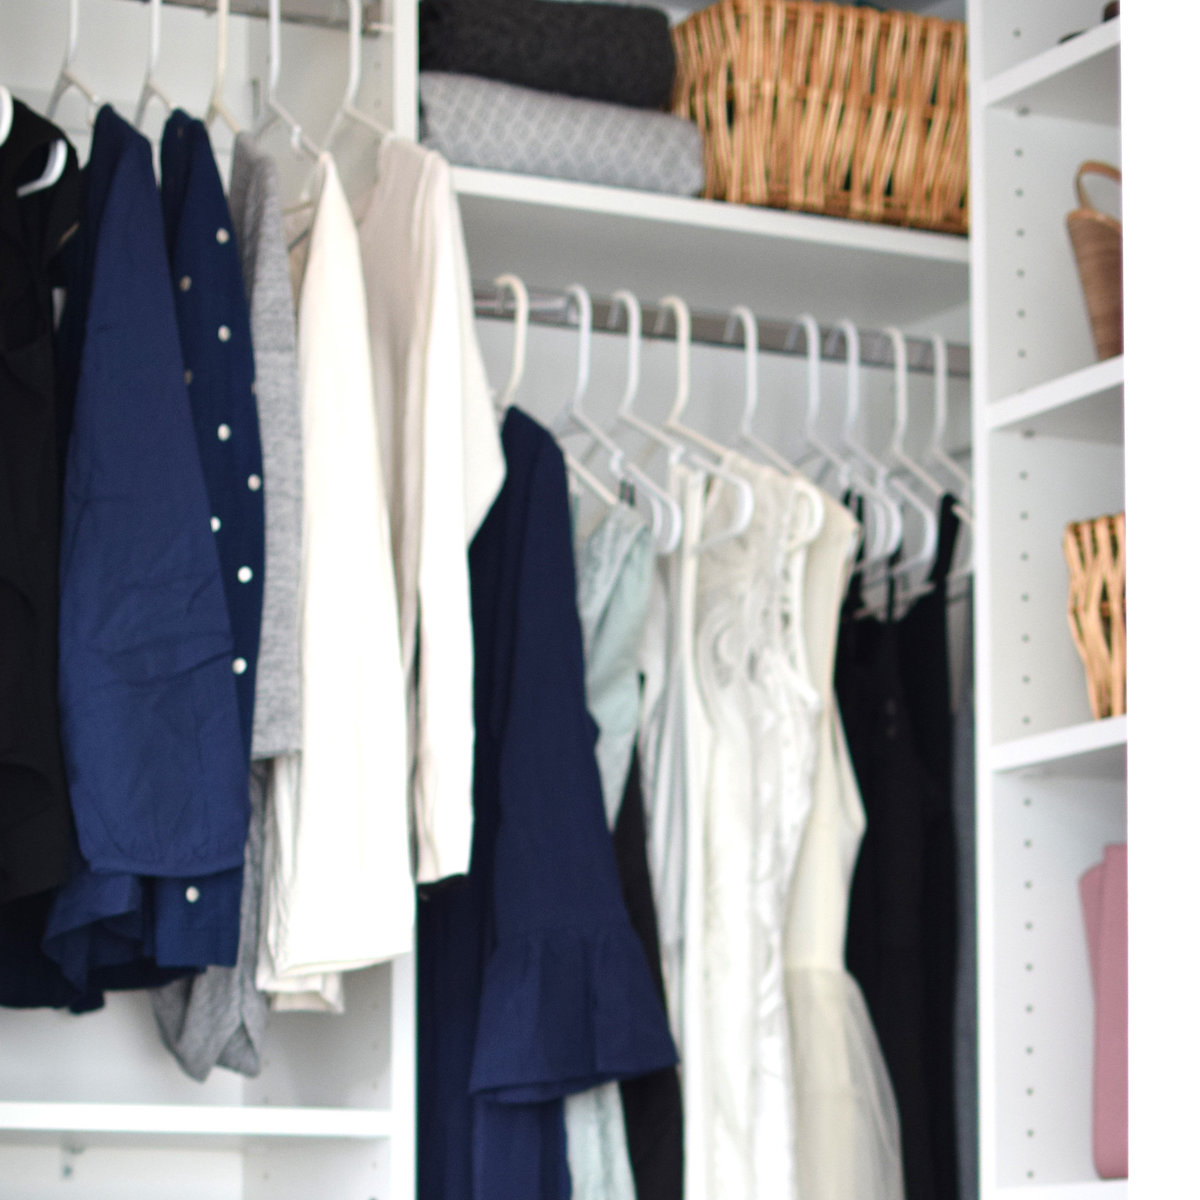 professionally organized closet gallery photo